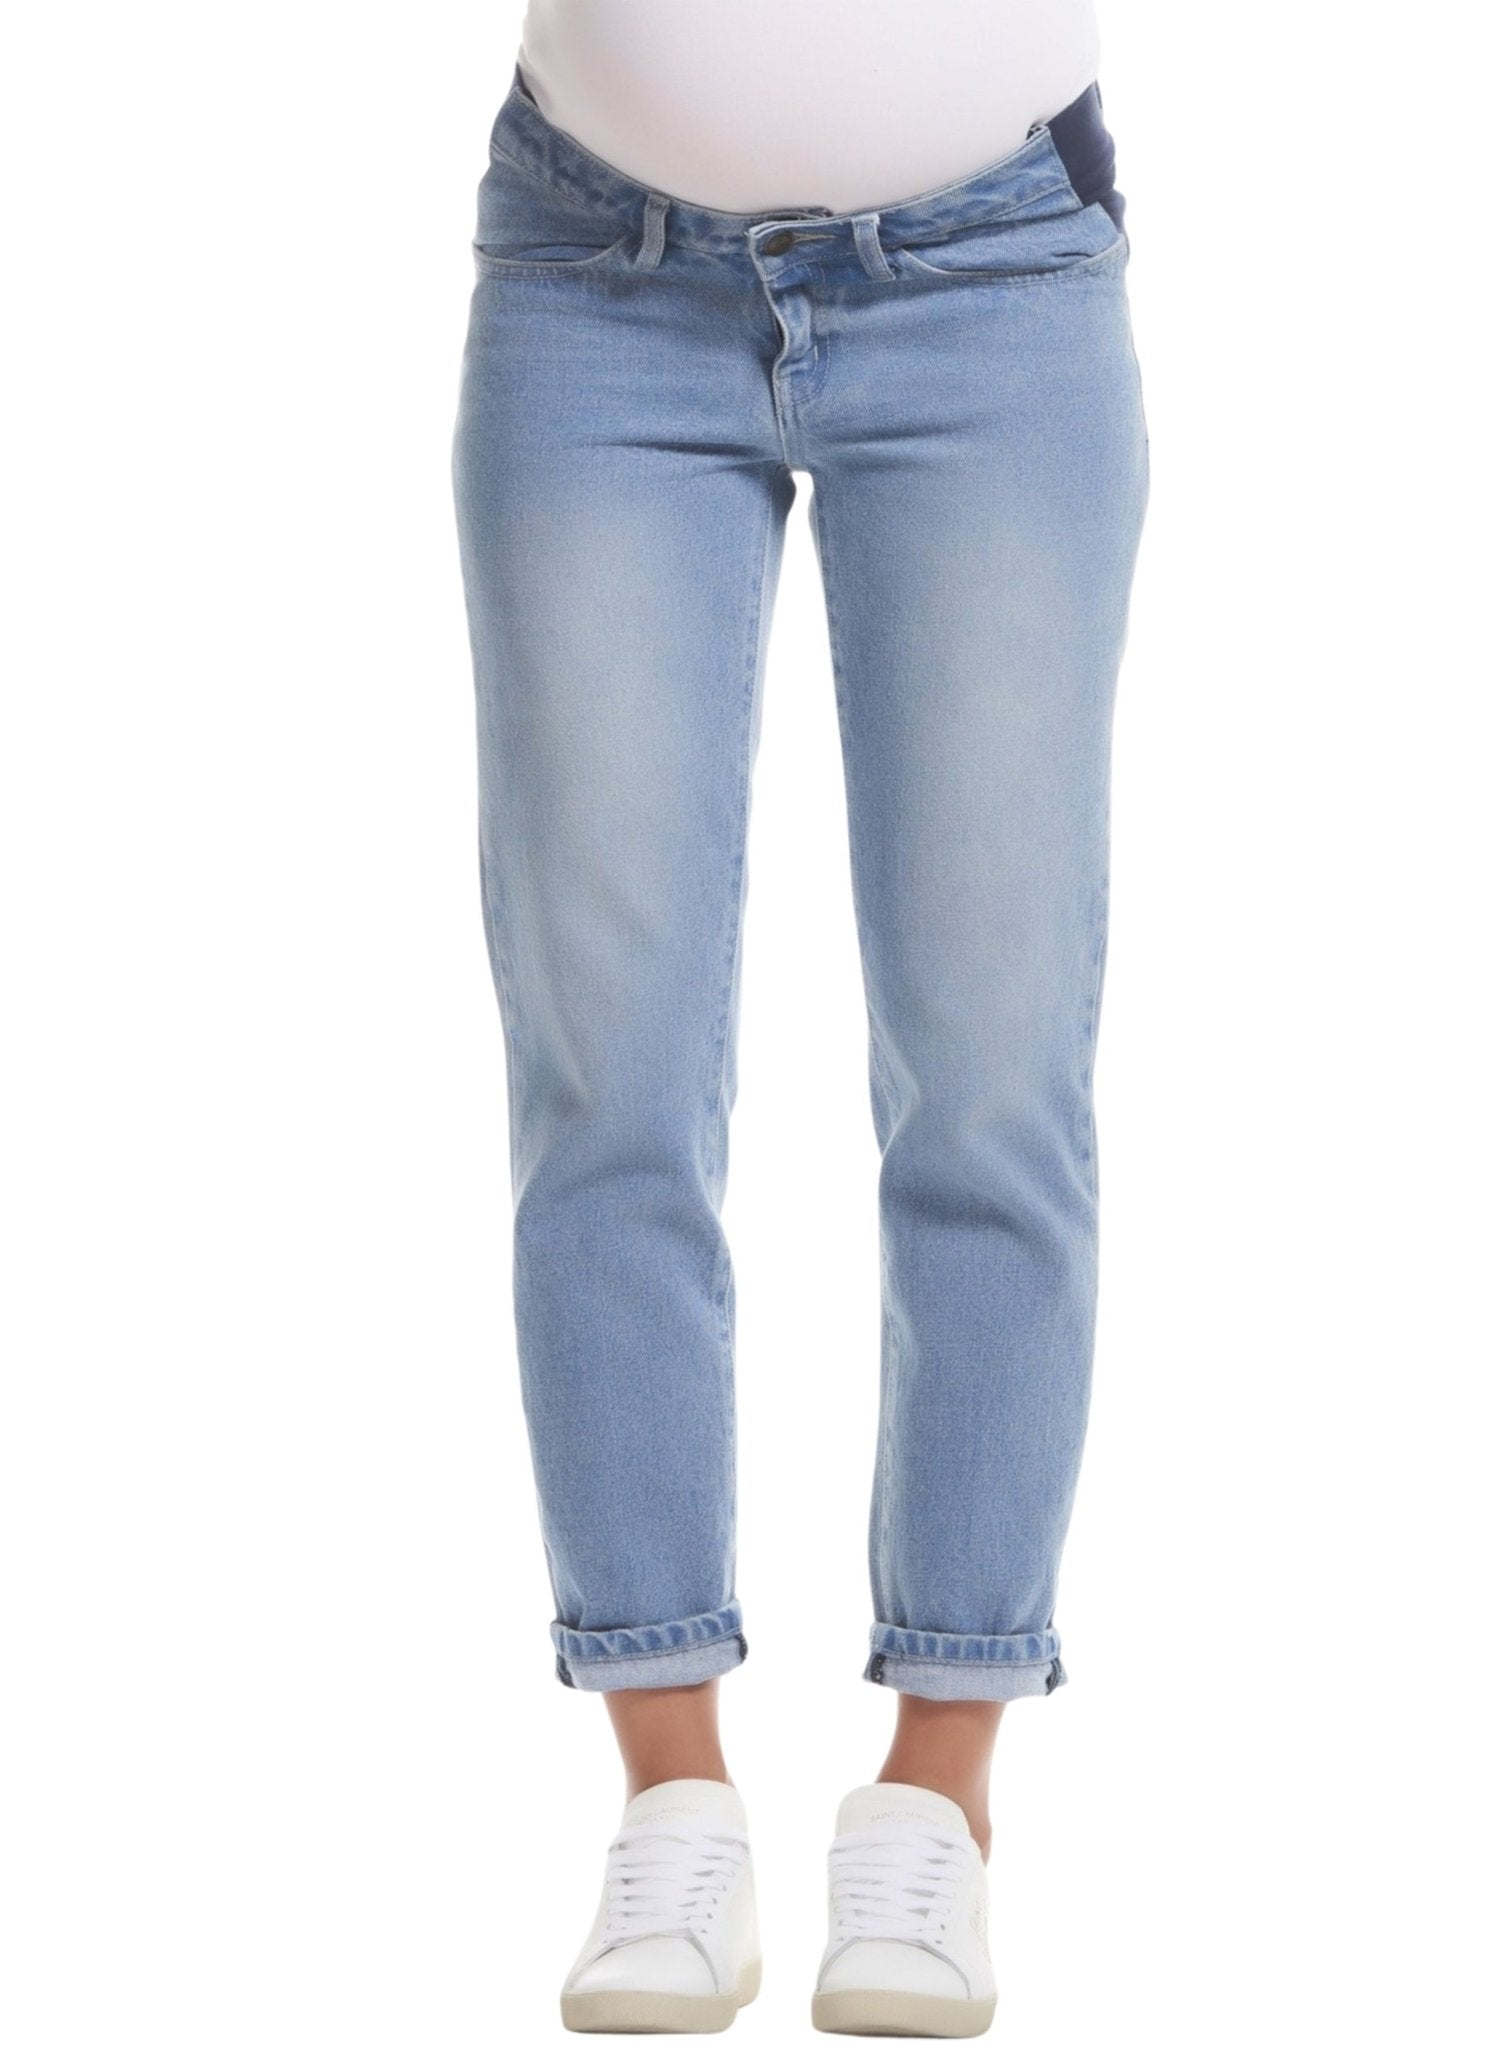 Loni Rigid Maternity Jeans - Mums and Bumps